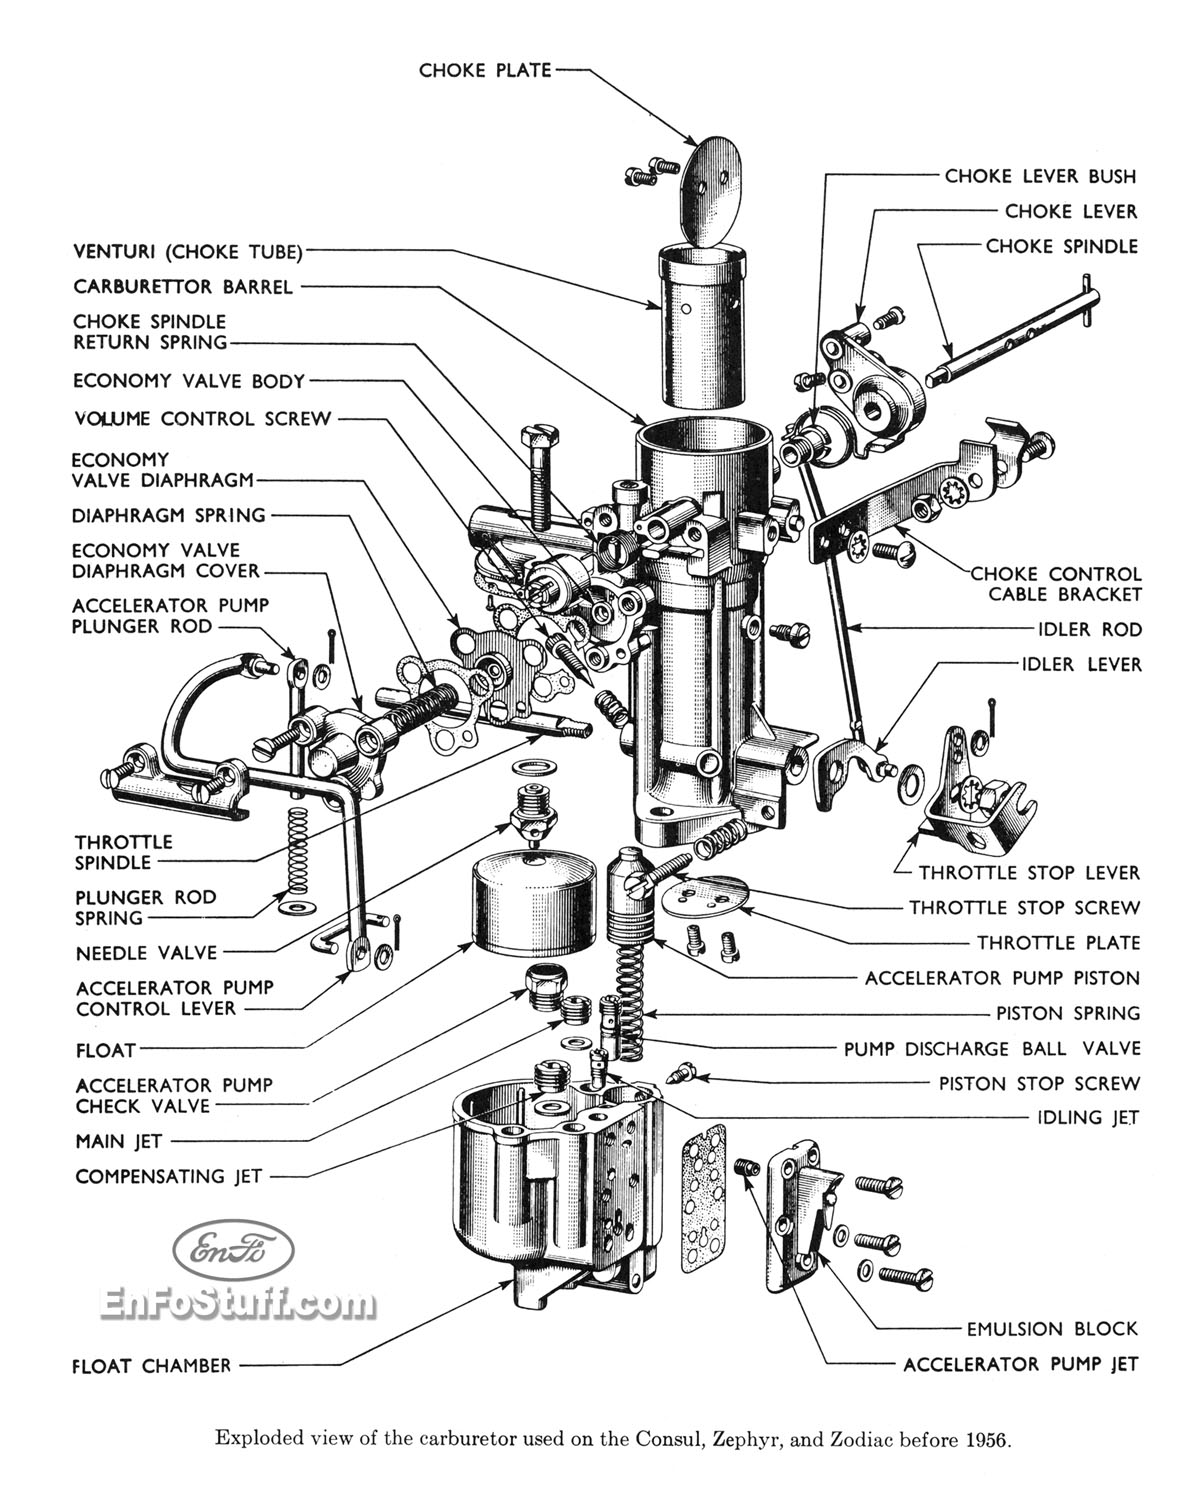 Carburetor Diagram For Ford Zephyr And Zodiac Pre 1956